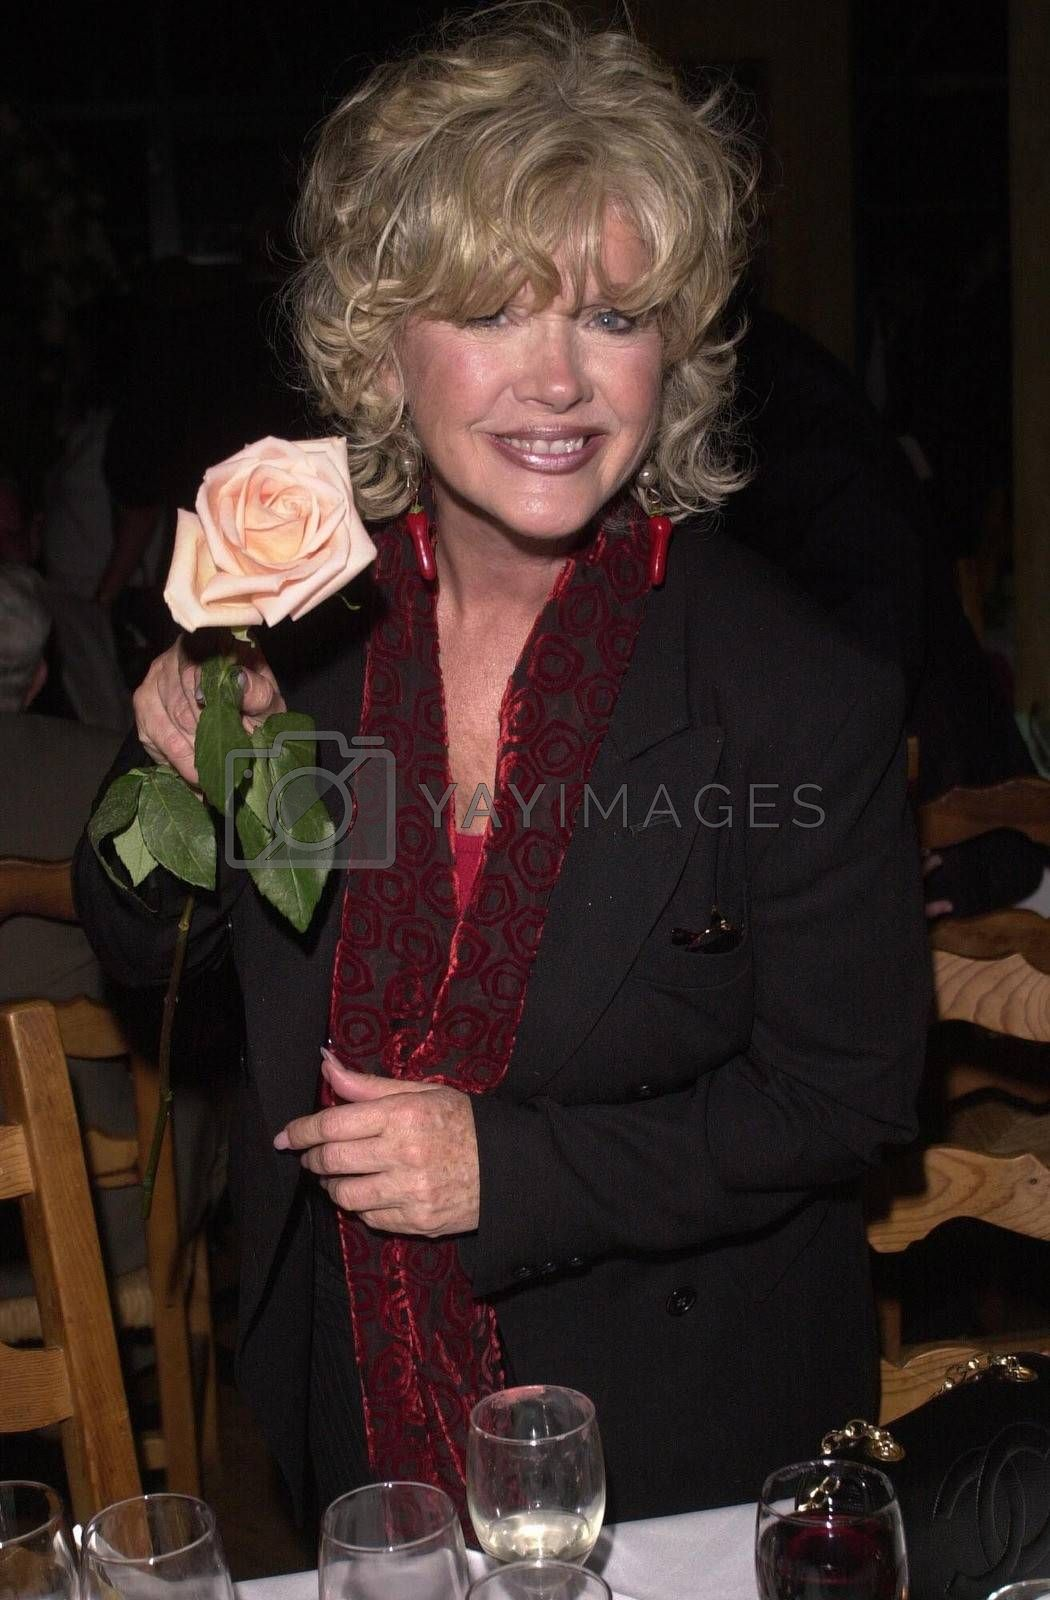 Connie Stevens at the premiere of My 5 Wives in Santa Monica. 08-28-00